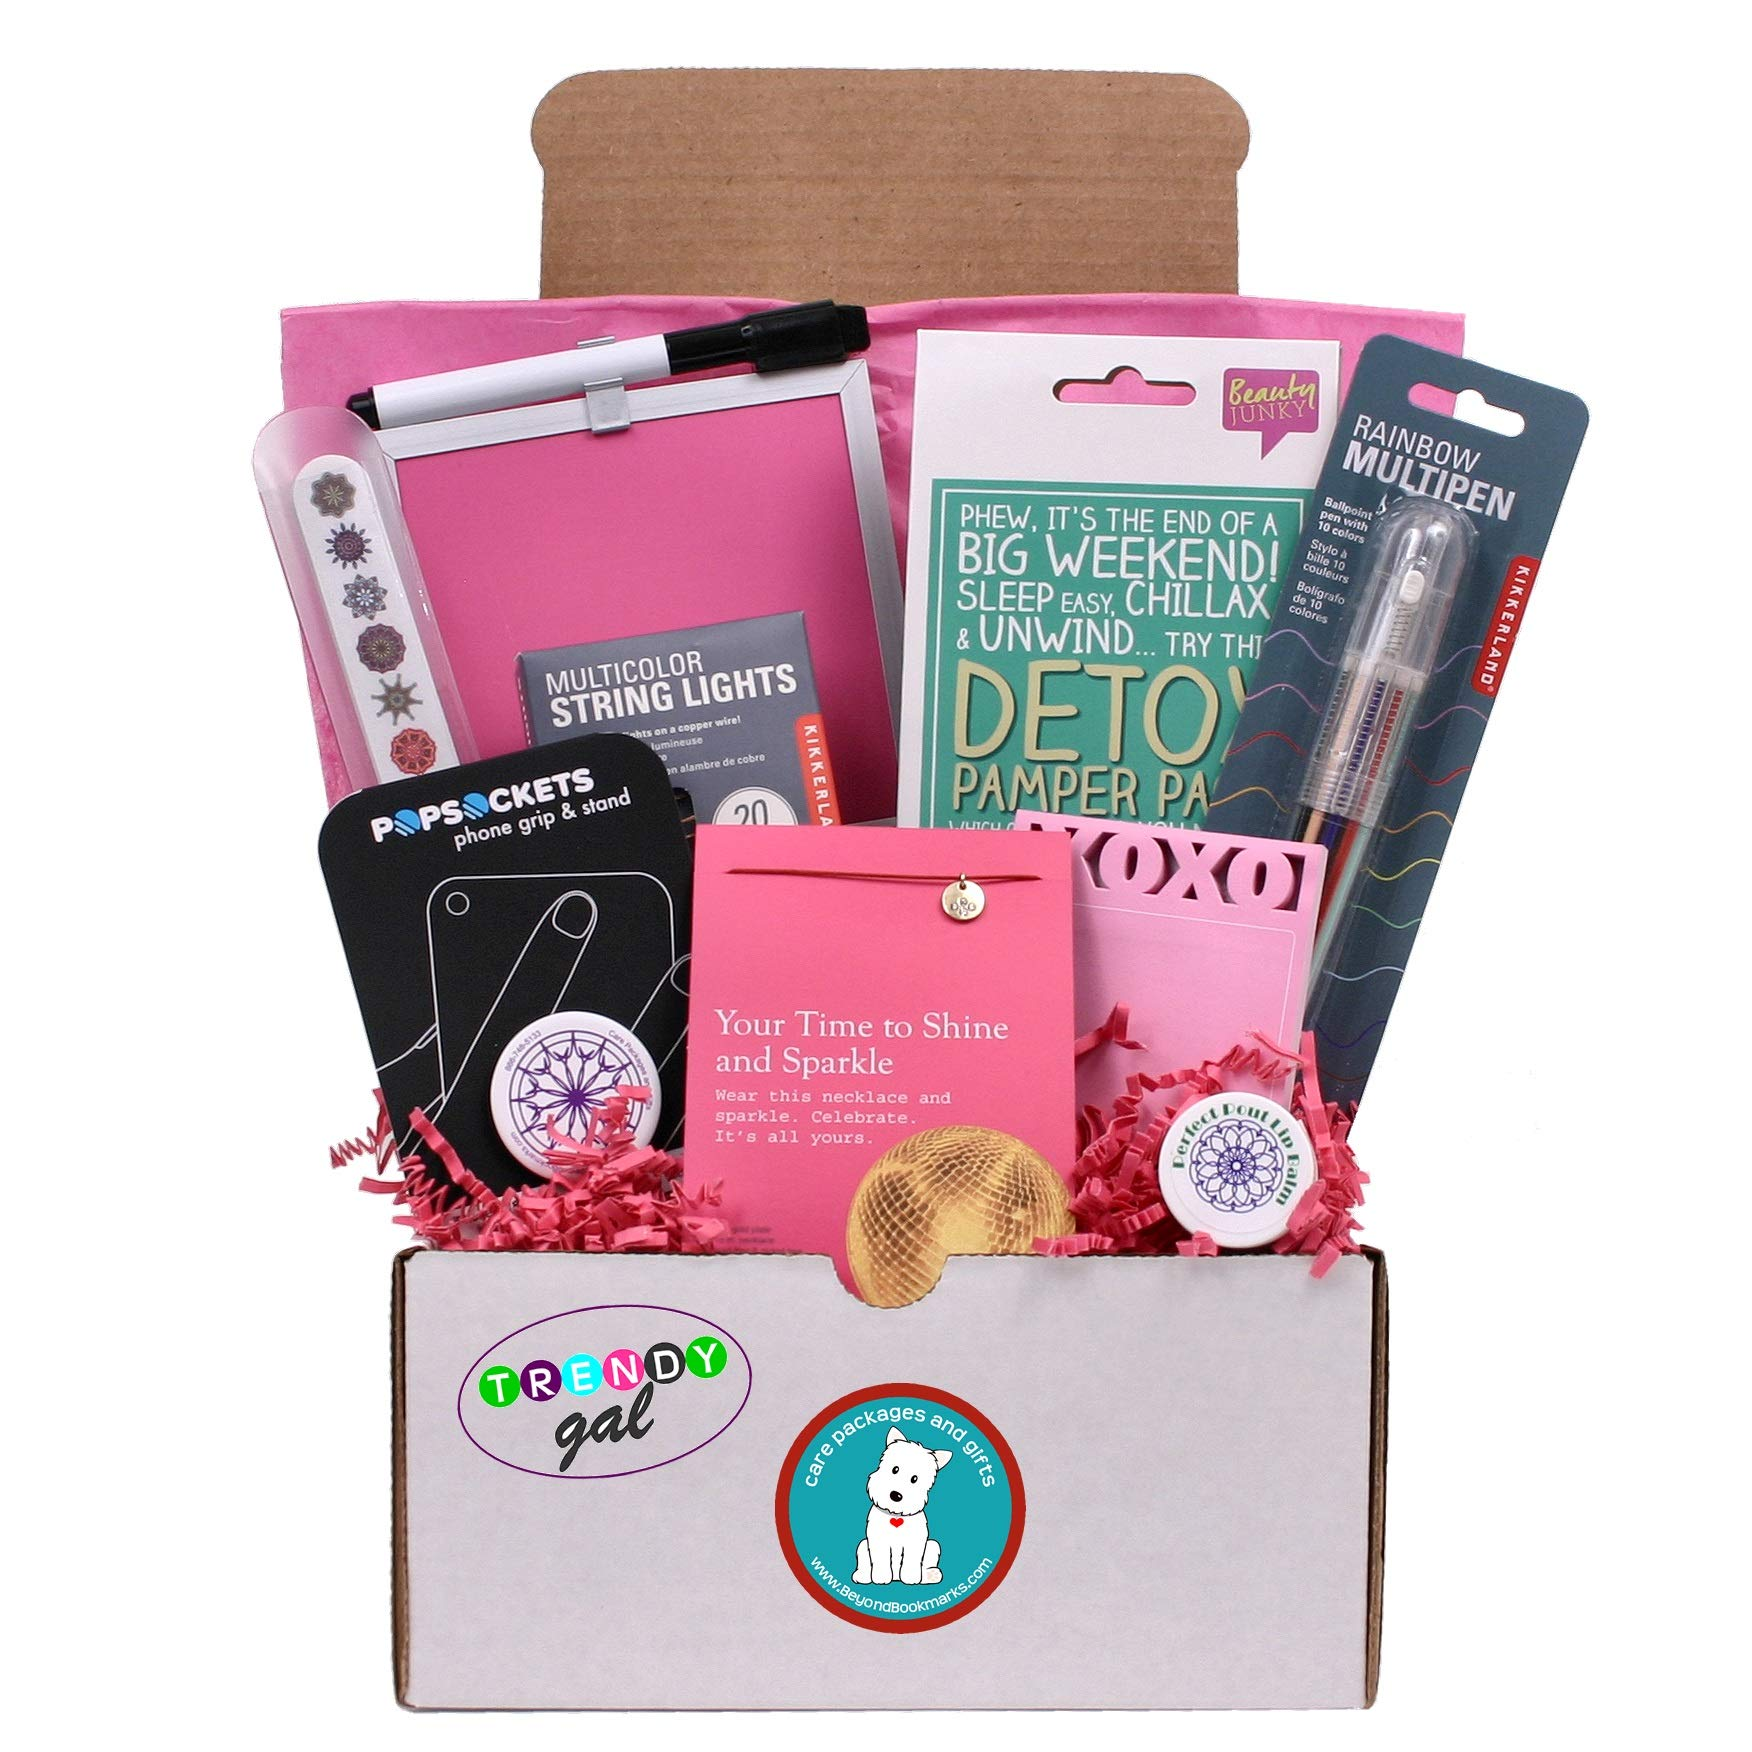 Beyond Bookmarks Trendy Gal Gift Pack by Beyond Bookmarks (Image #1)